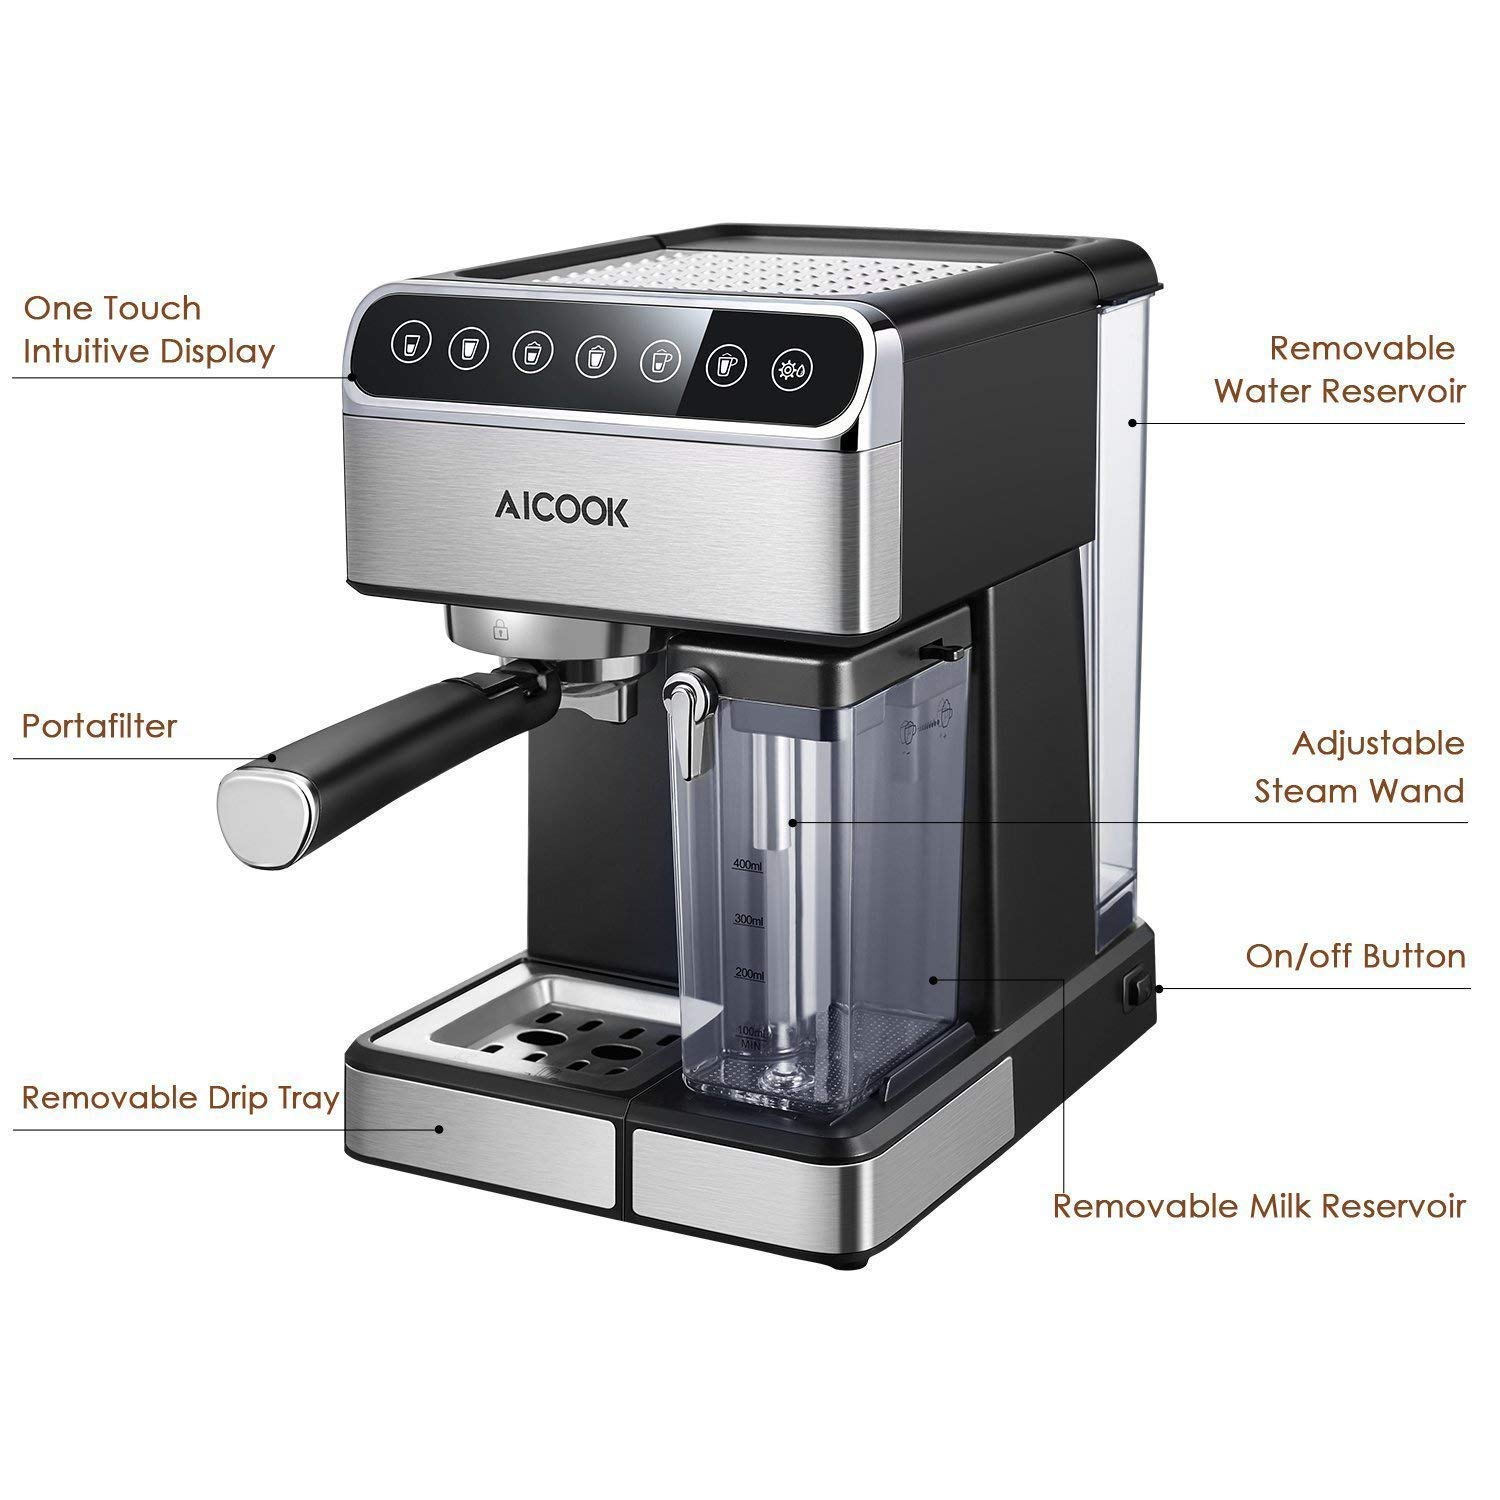 Aicook Espresso Machine, Barista Espresso Coffee Maker with One Touch Digital Screen, 15 Bar Pump and Automatic Milk Frother, Cappuccino Maker, Latte maker by AICOOK (Image #5)